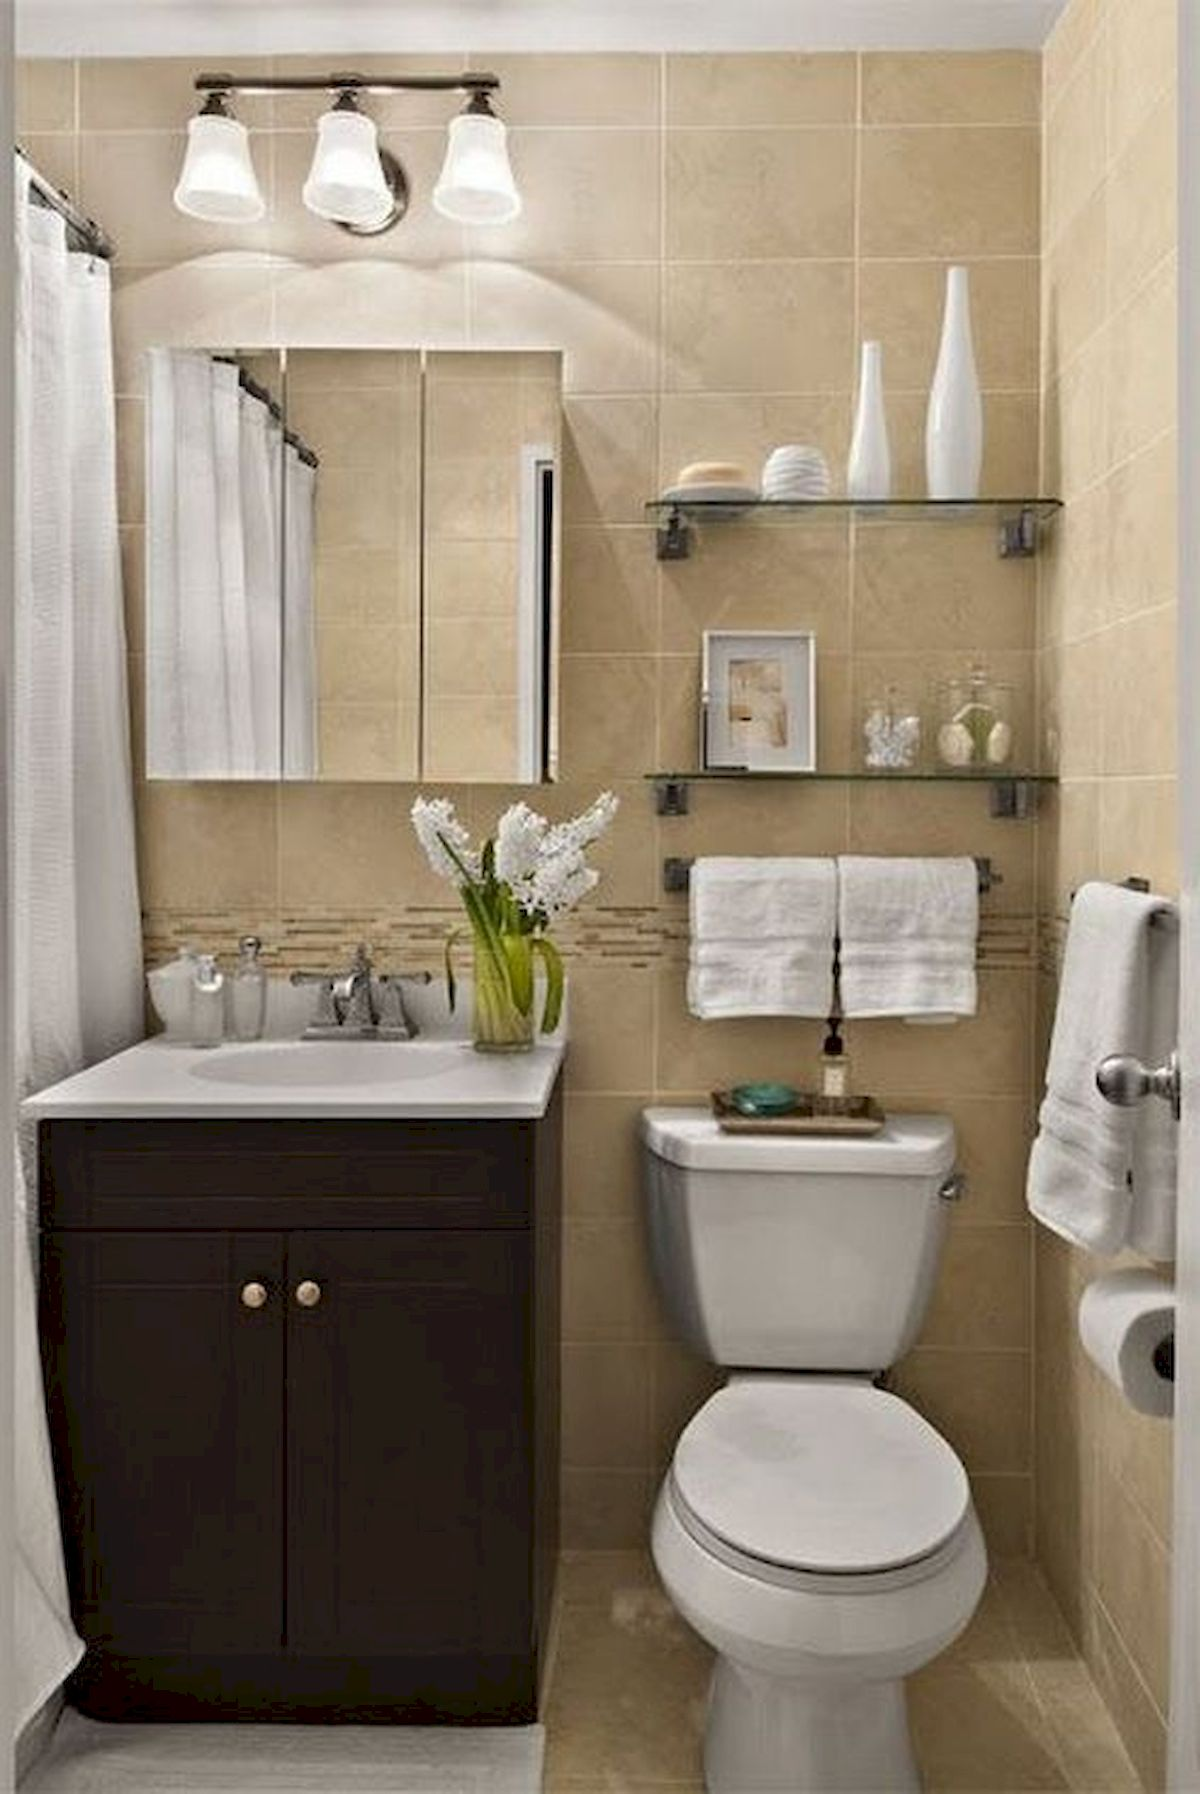 50 Best DIY Storage Design Ideas To Maximize Your Small Bathroom Space (2)